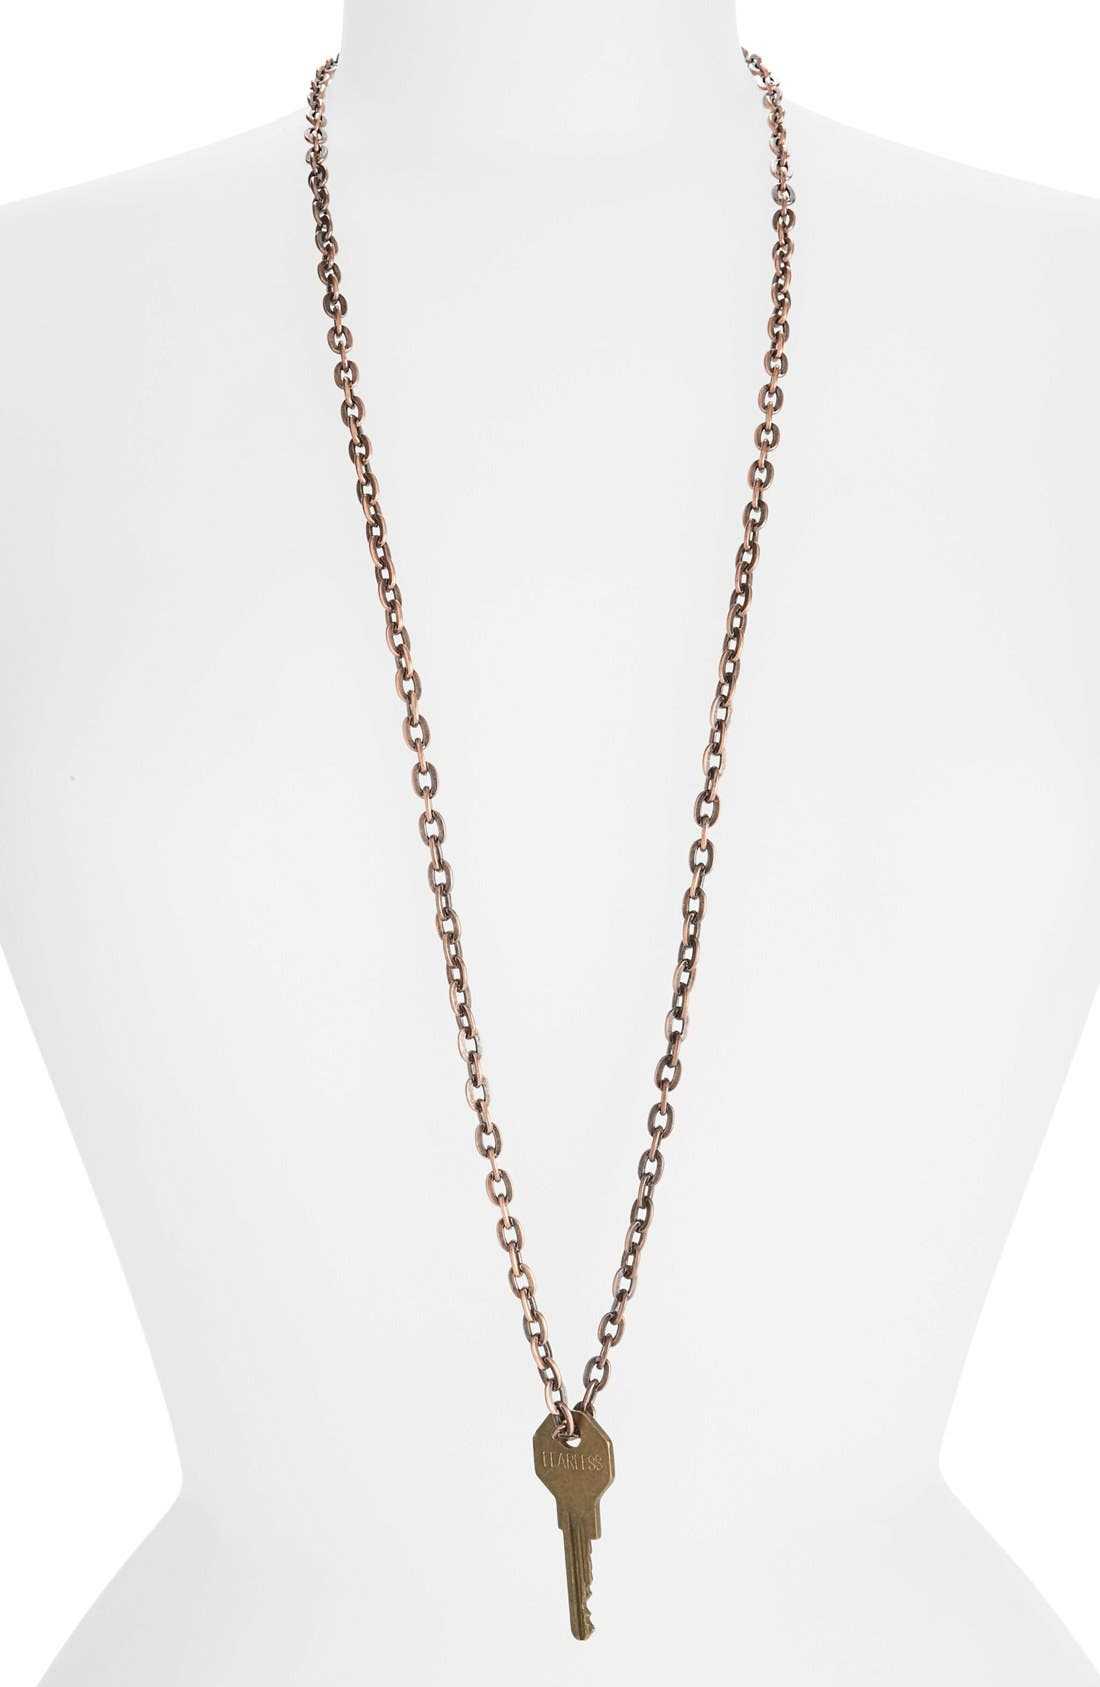 Alternate Image 1 Selected - The Giving Keys 'Love' Copper Chain Key Pendant Necklace